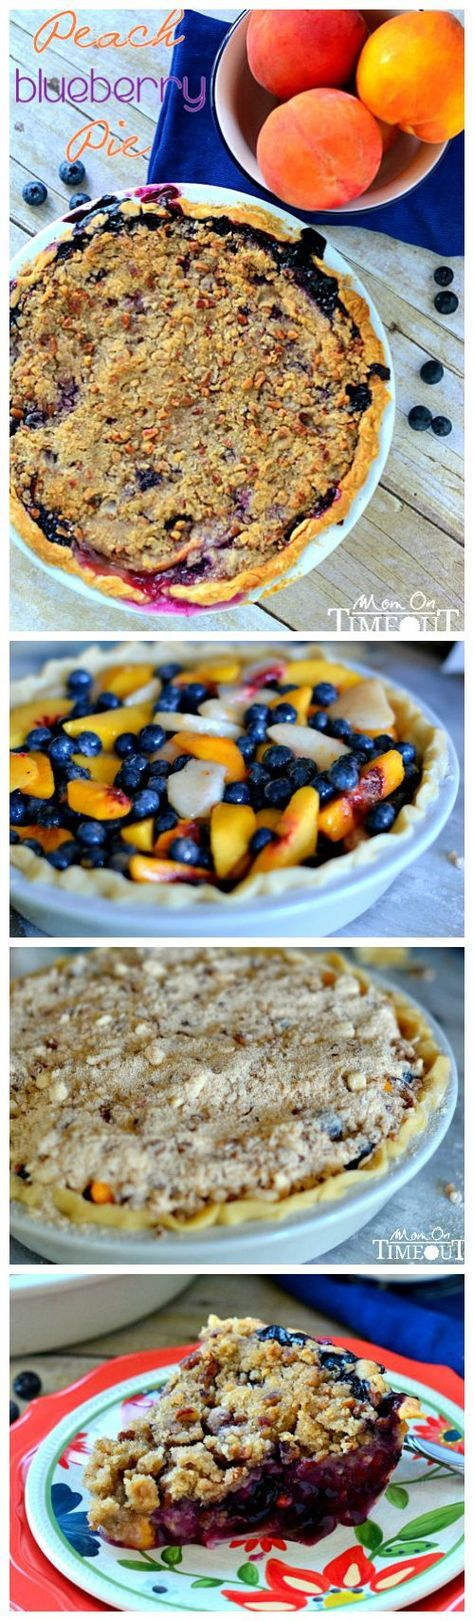 Peach Blueberry Pie with Pecan Streusel topping is made with fresh peaches and blueberries for an extra delicious and fresh pie! Irresistible! // Mom On Timeout